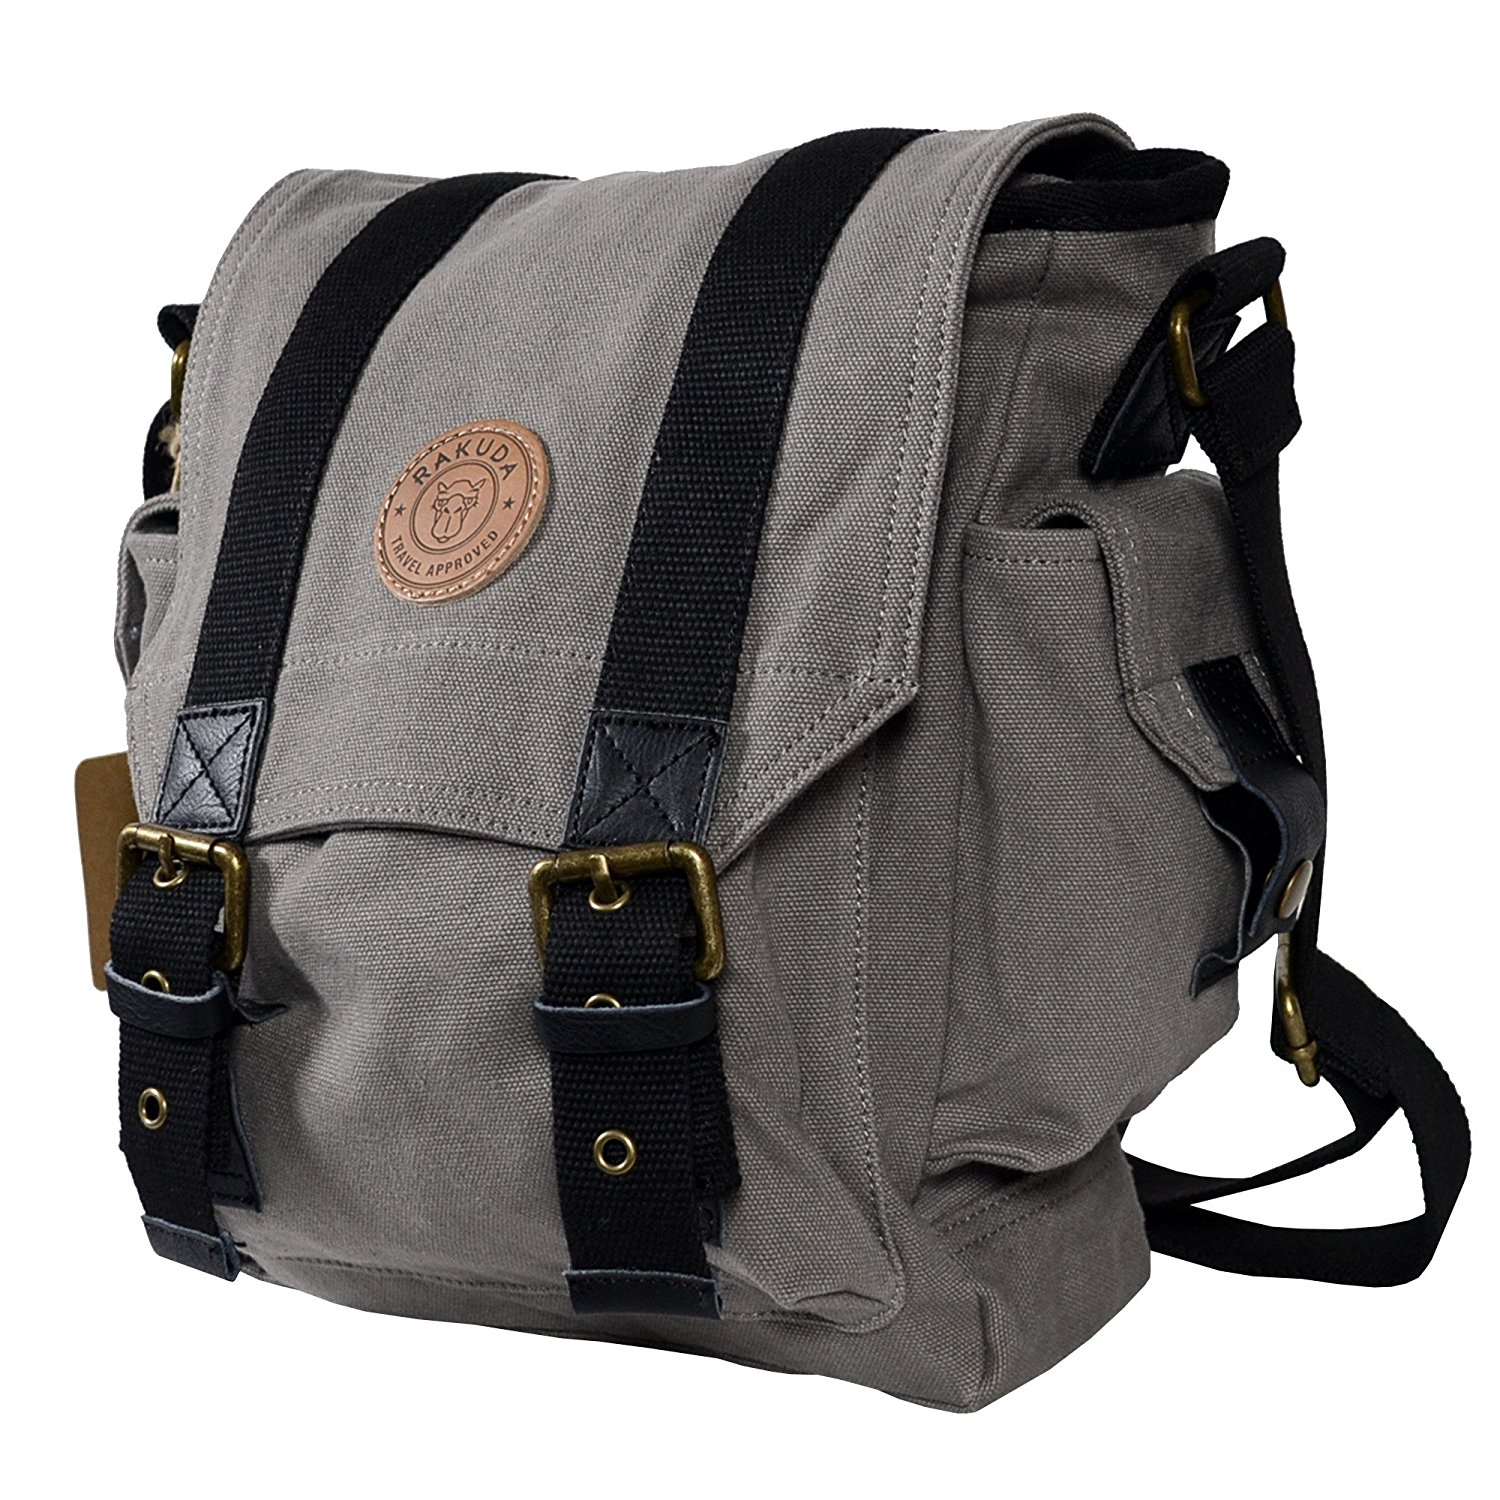 Rakuda Messenger Canvas Travel Bag with Side Pockets and Leather ...